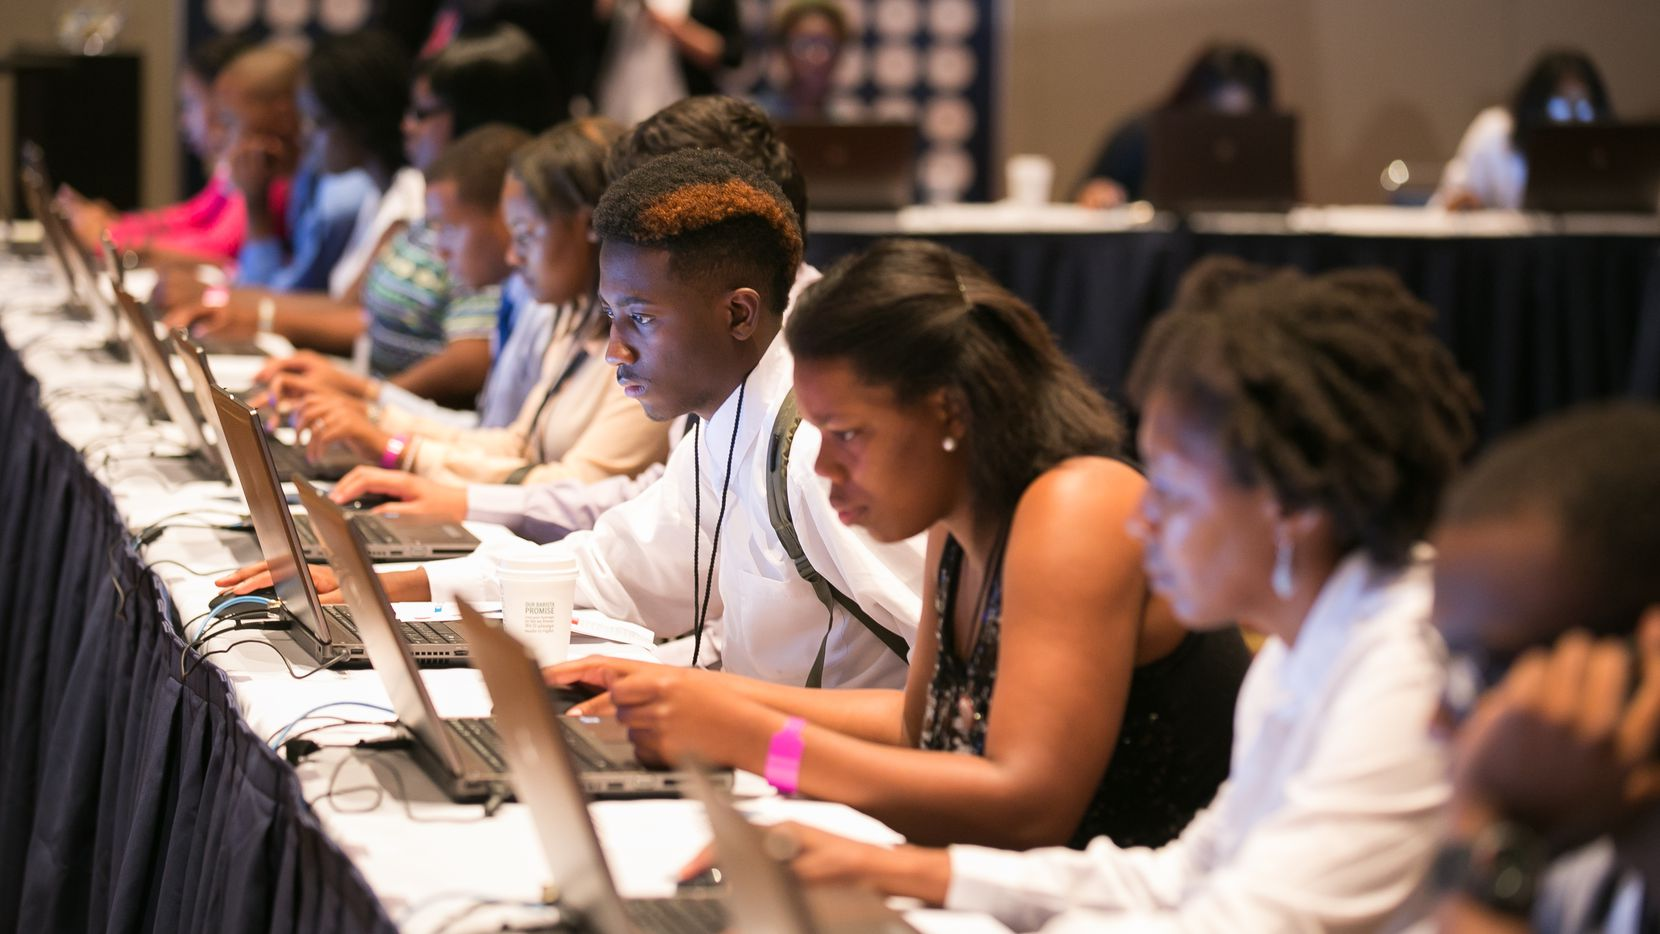 Youth filling out job applications at Opportunity Fair and Forum at McCormick Place Chicago, Ill. Thursday, August 13, 2015.  (Photo by Peter Wynn Thompson/AP Images for 100,000 Opportunities Initiative)